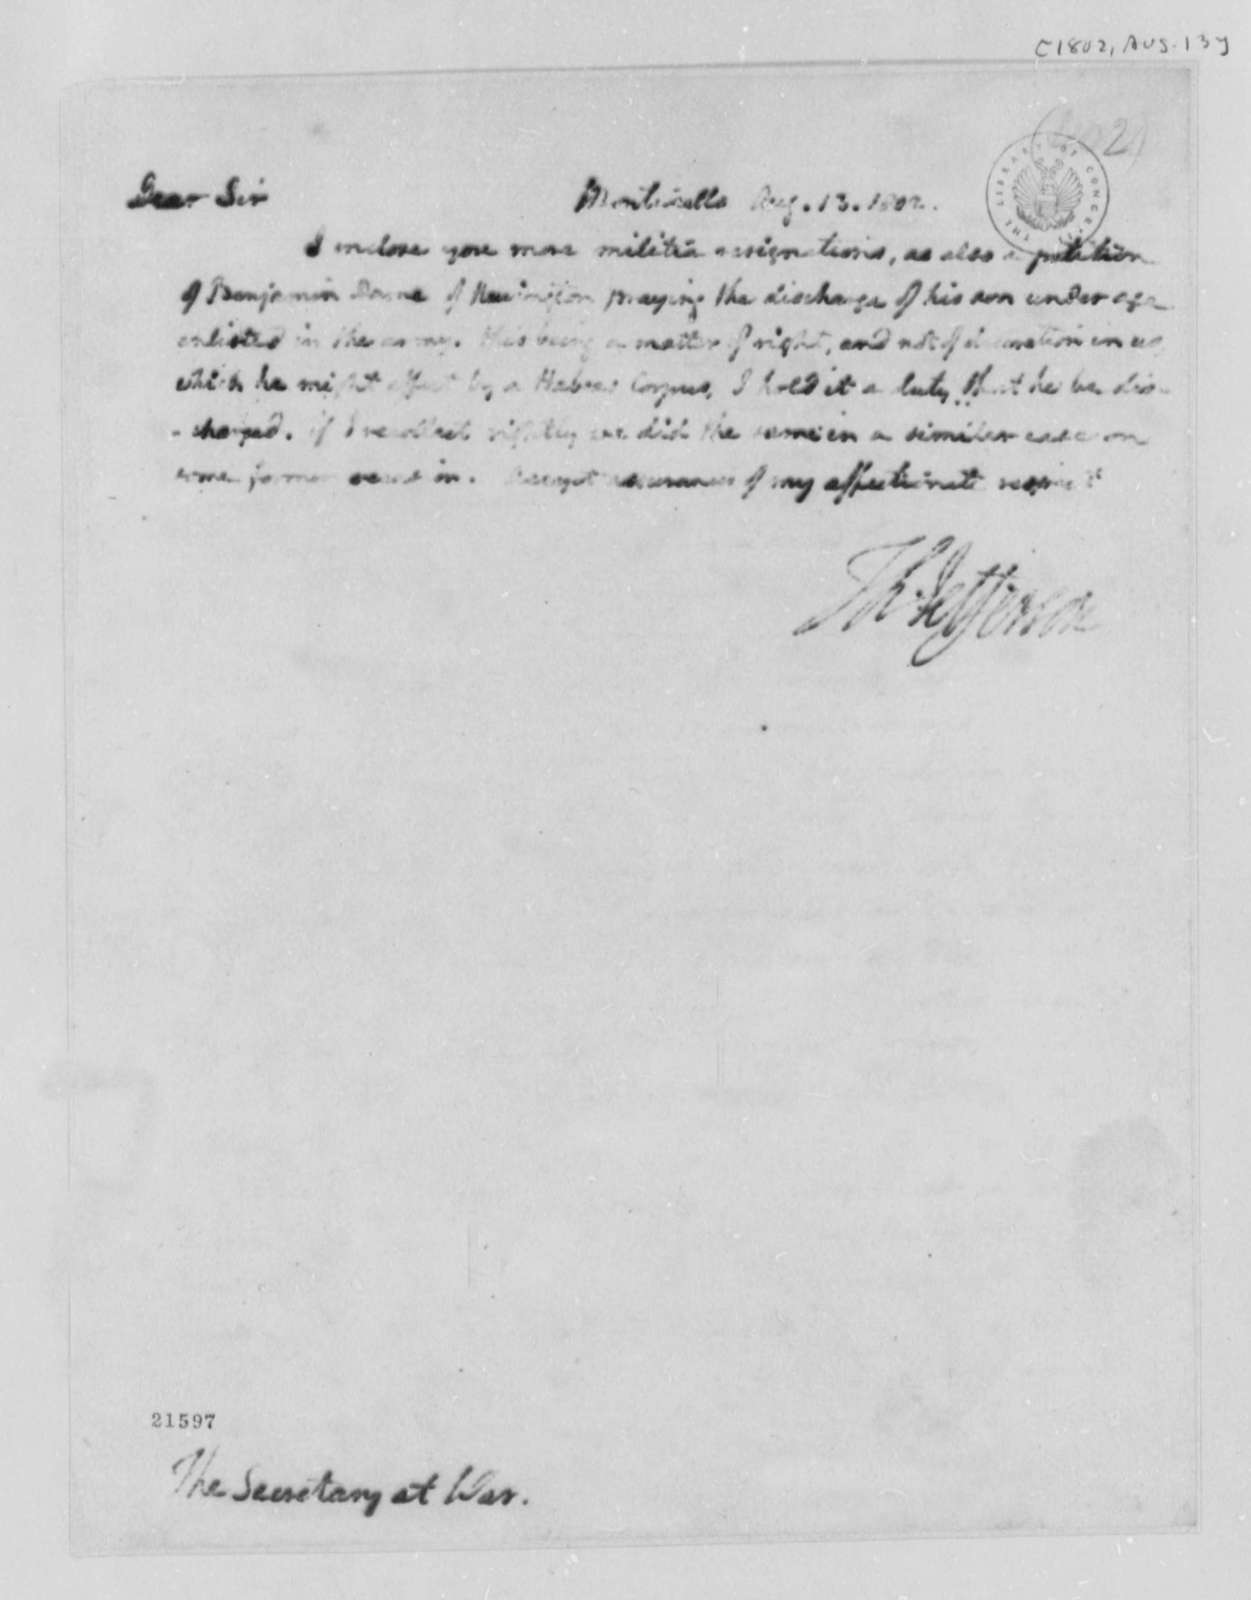 Thomas Jefferson to Henry Dearborn, August 13, 1802